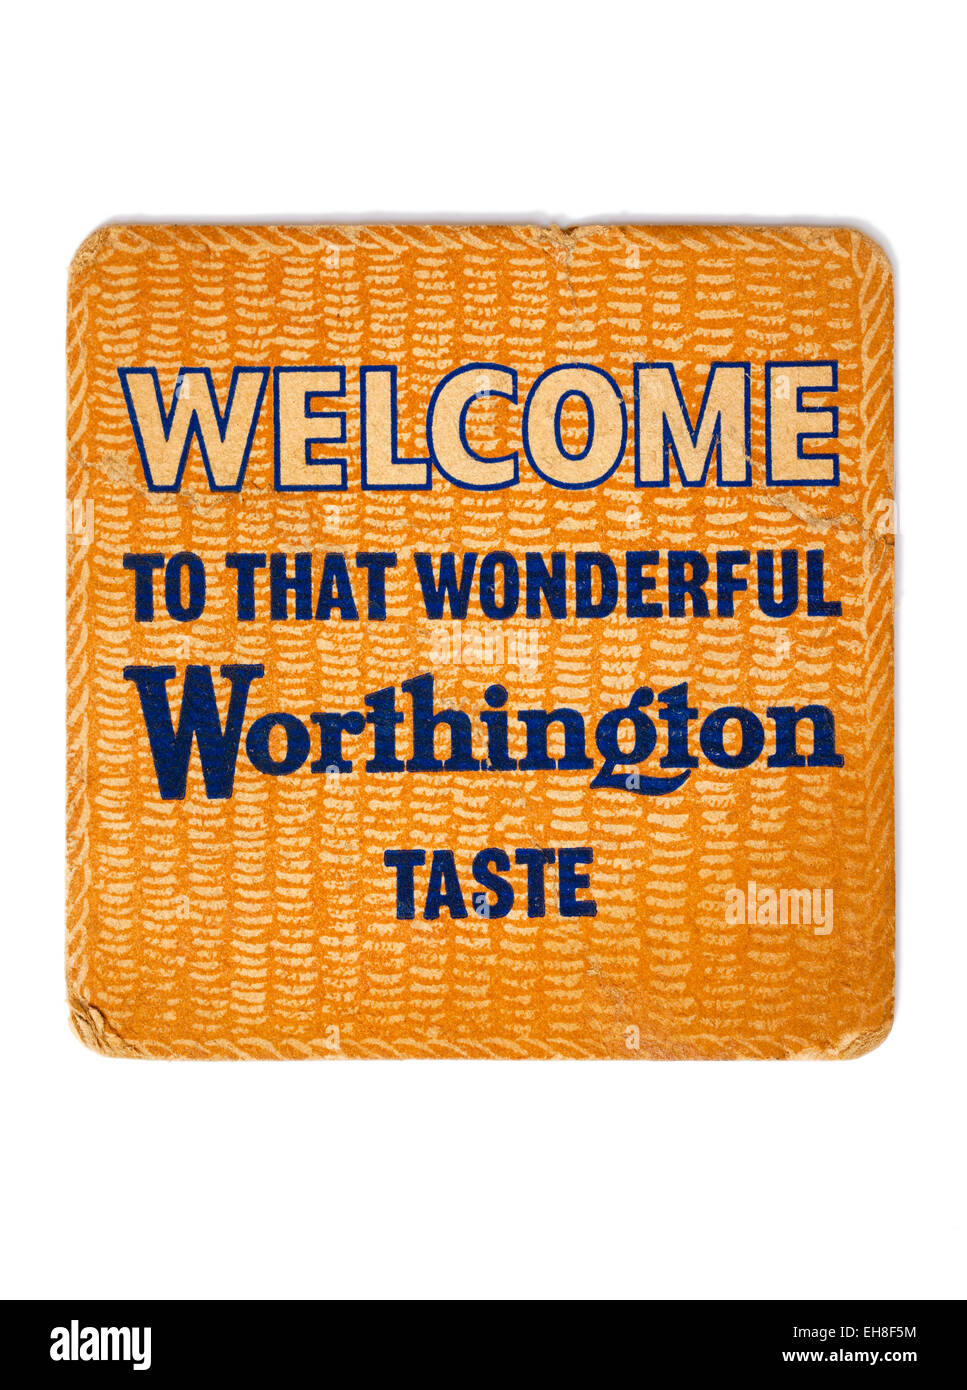 Vintage Beermat Advertising Worthington Beer - Stock Image